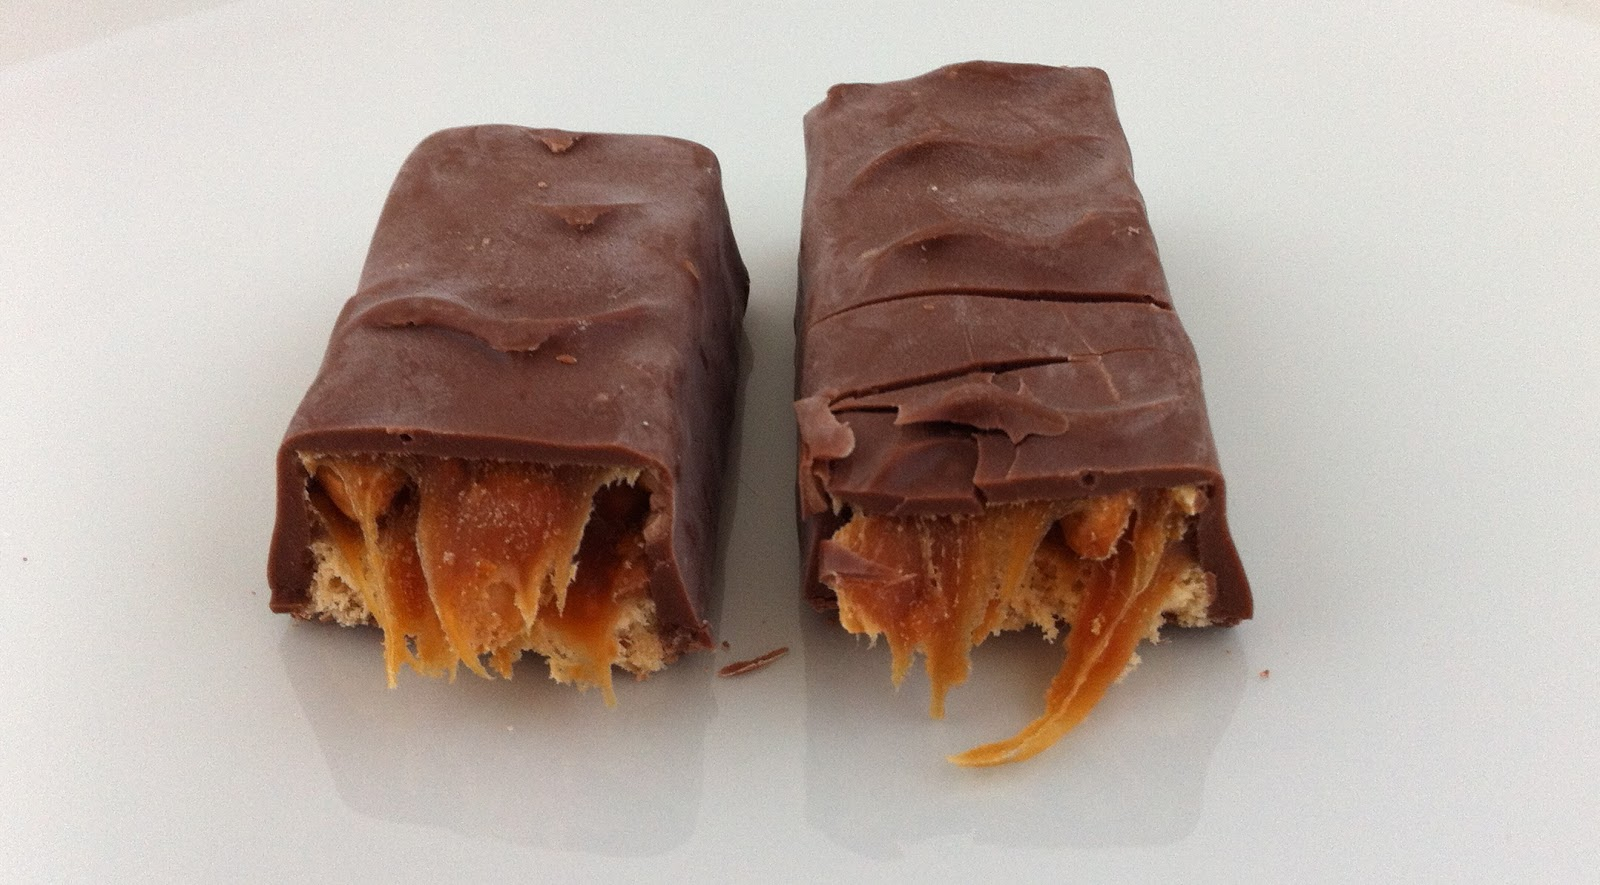 Obsessive Sweets Smirk Chocolate Bar Burnt Cinnamon Lemonhead Lip Smack Box Bars Are The Dairy Kosher Version Of Snickers Theyre Produced By Paskesz Company A Near Century Old Candy Maker And